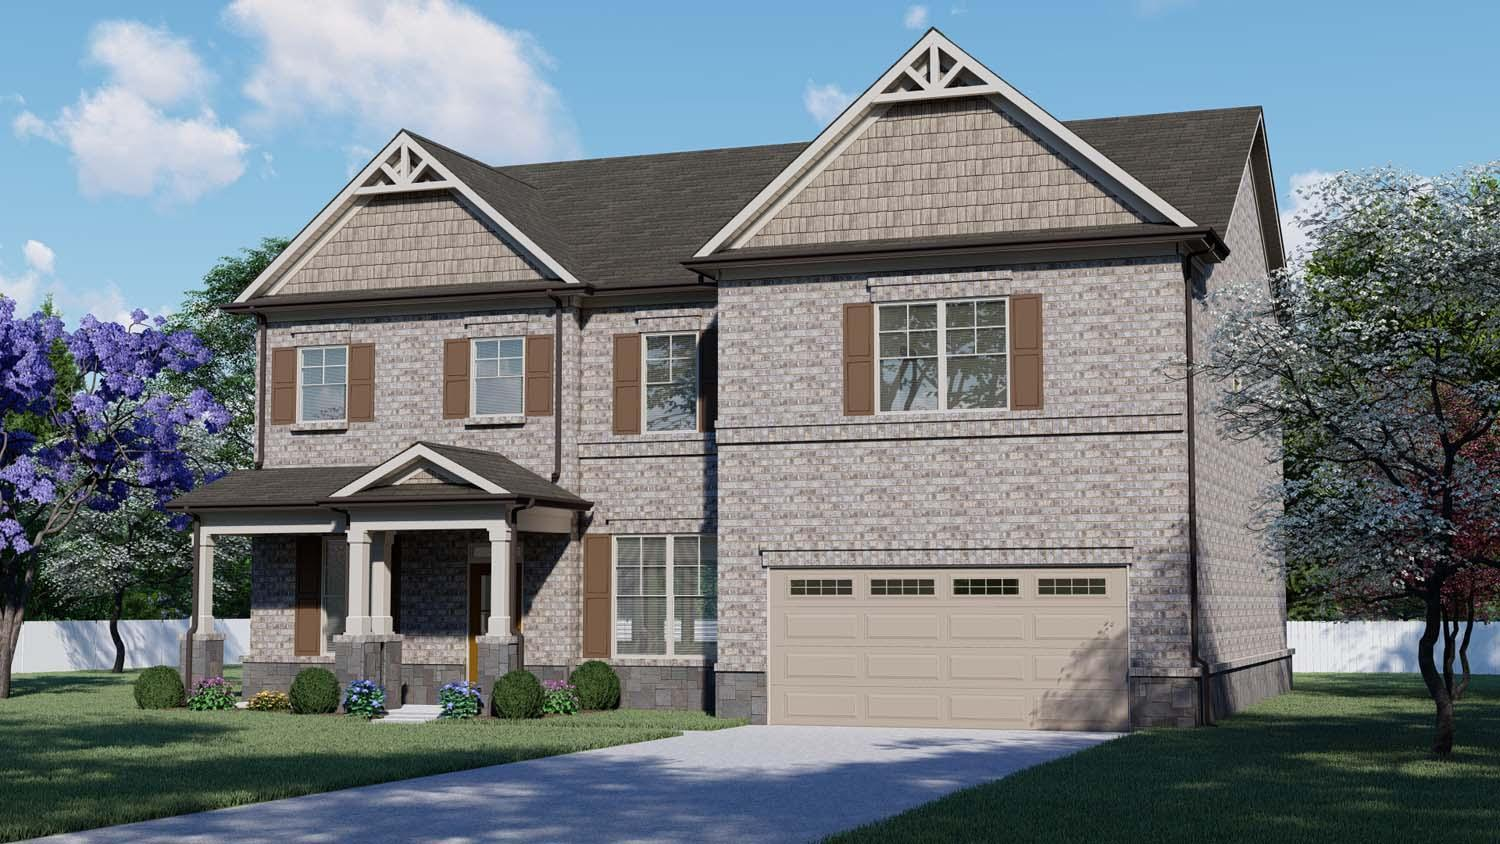 The Cambridge by Chafin Communities